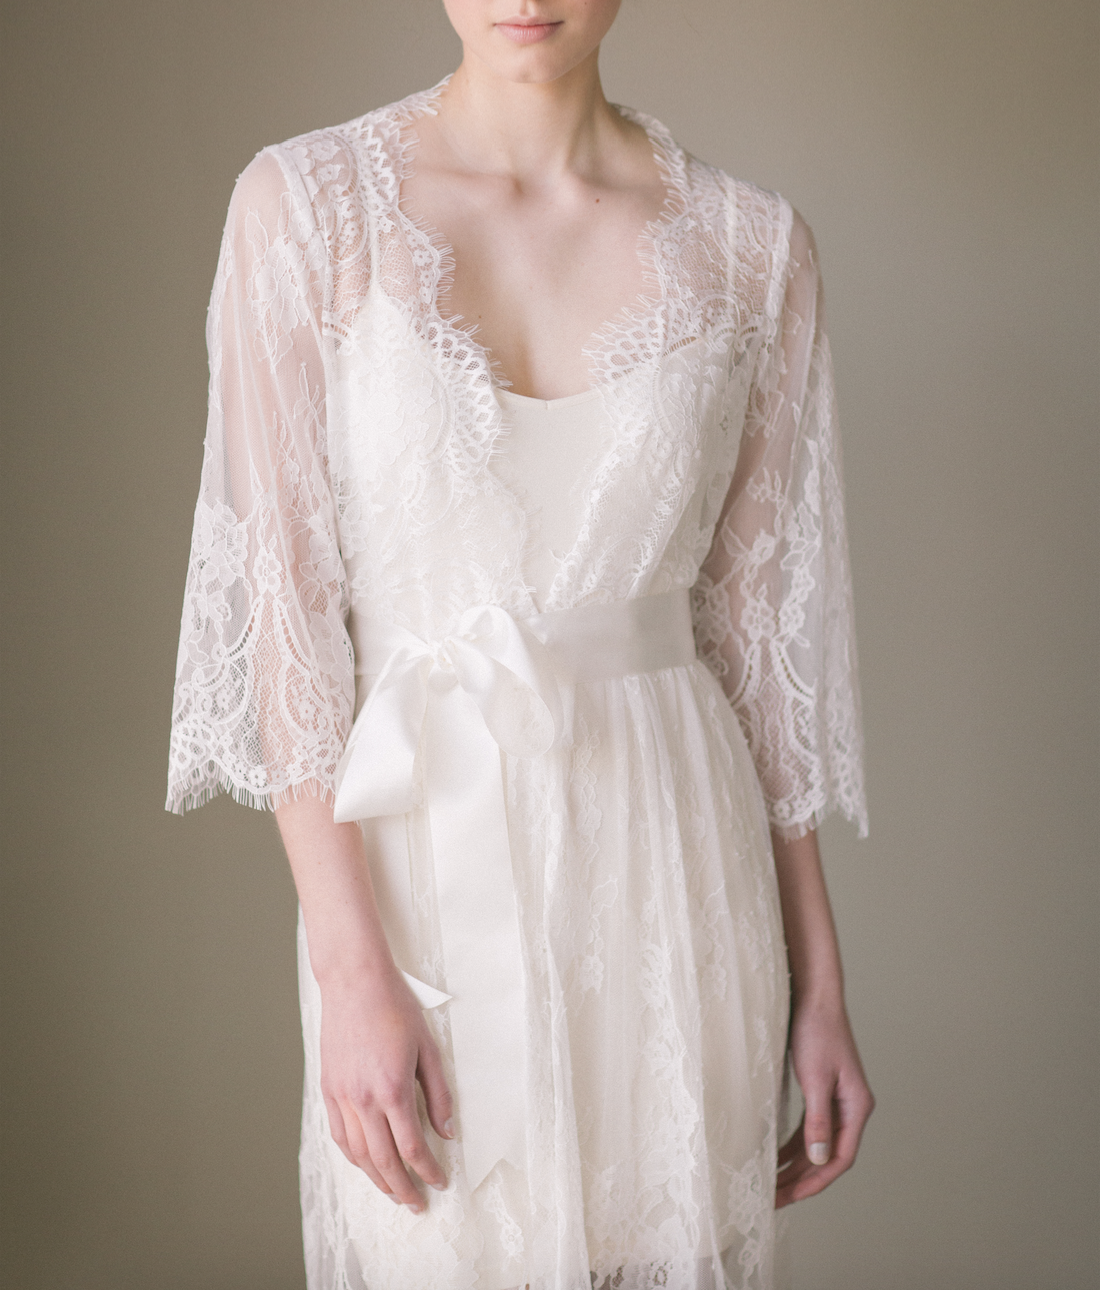 Bridal Lace Robe Kimono (#Isabella) - Dream Dresses by P.M.N  - 4